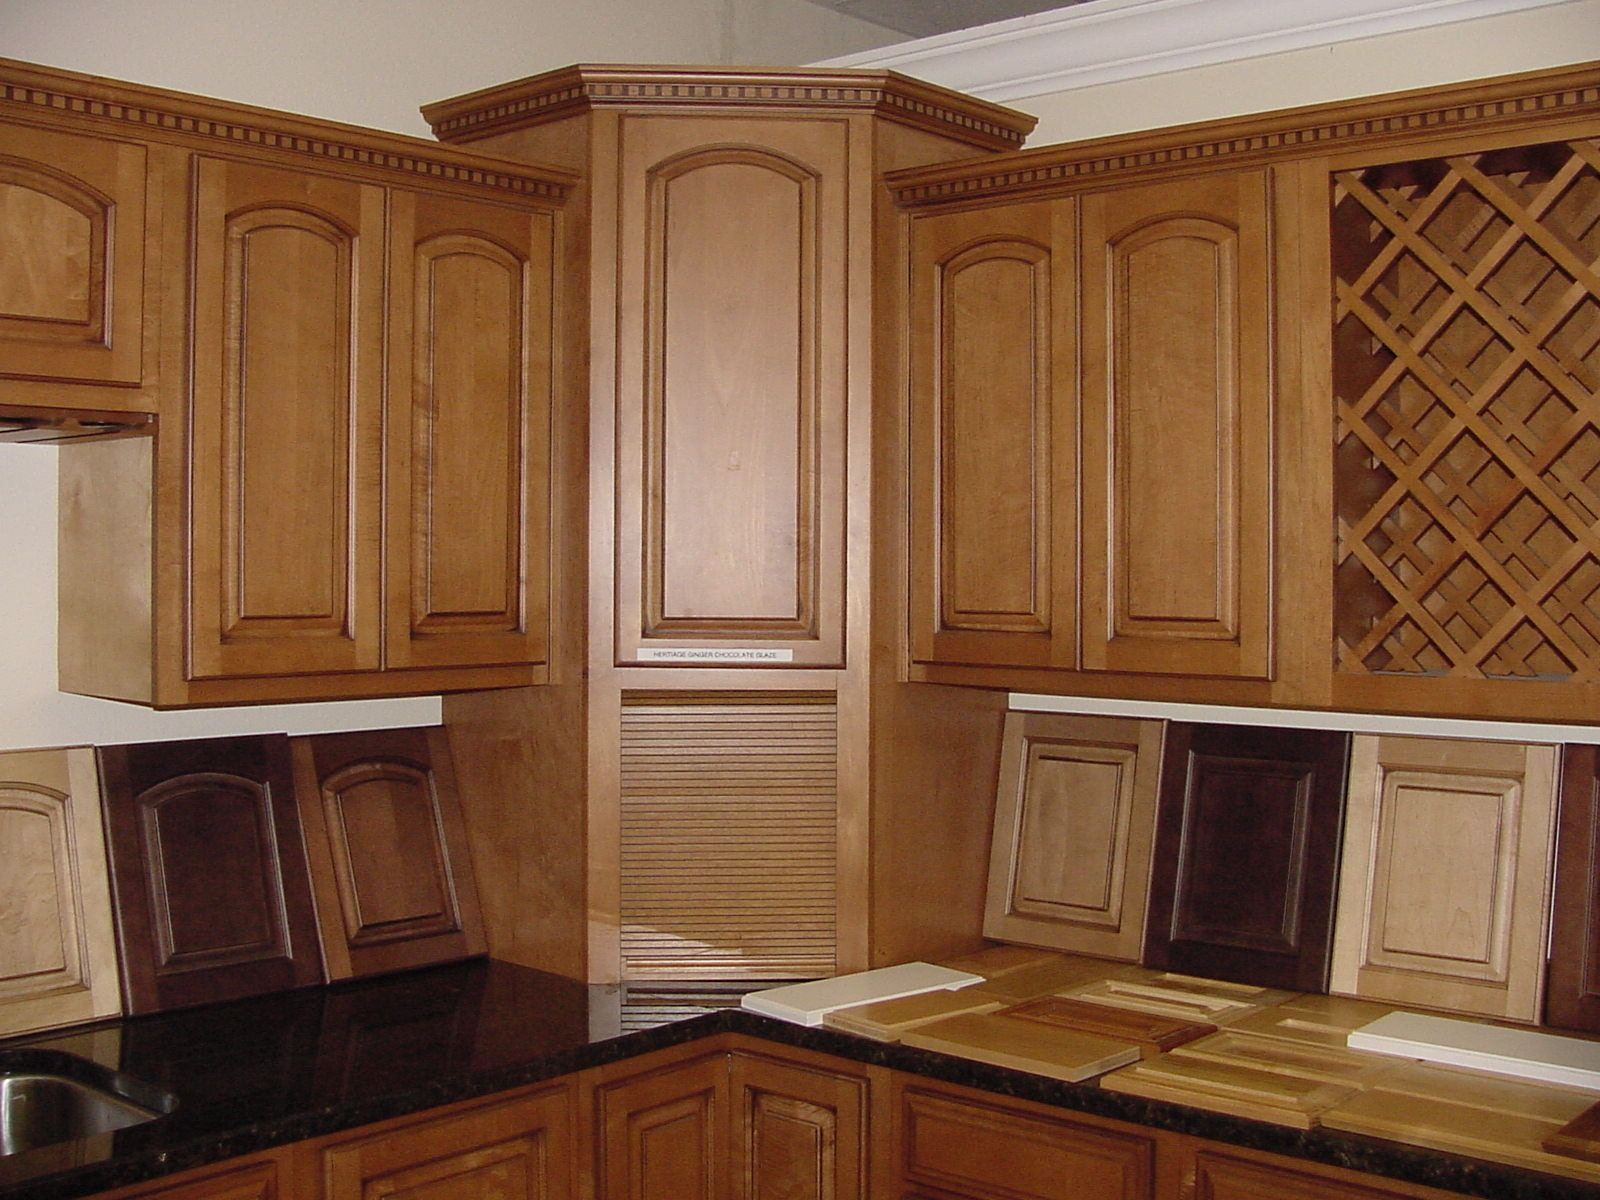 Kitchen cabinet hinges consist of incredible design which is totally